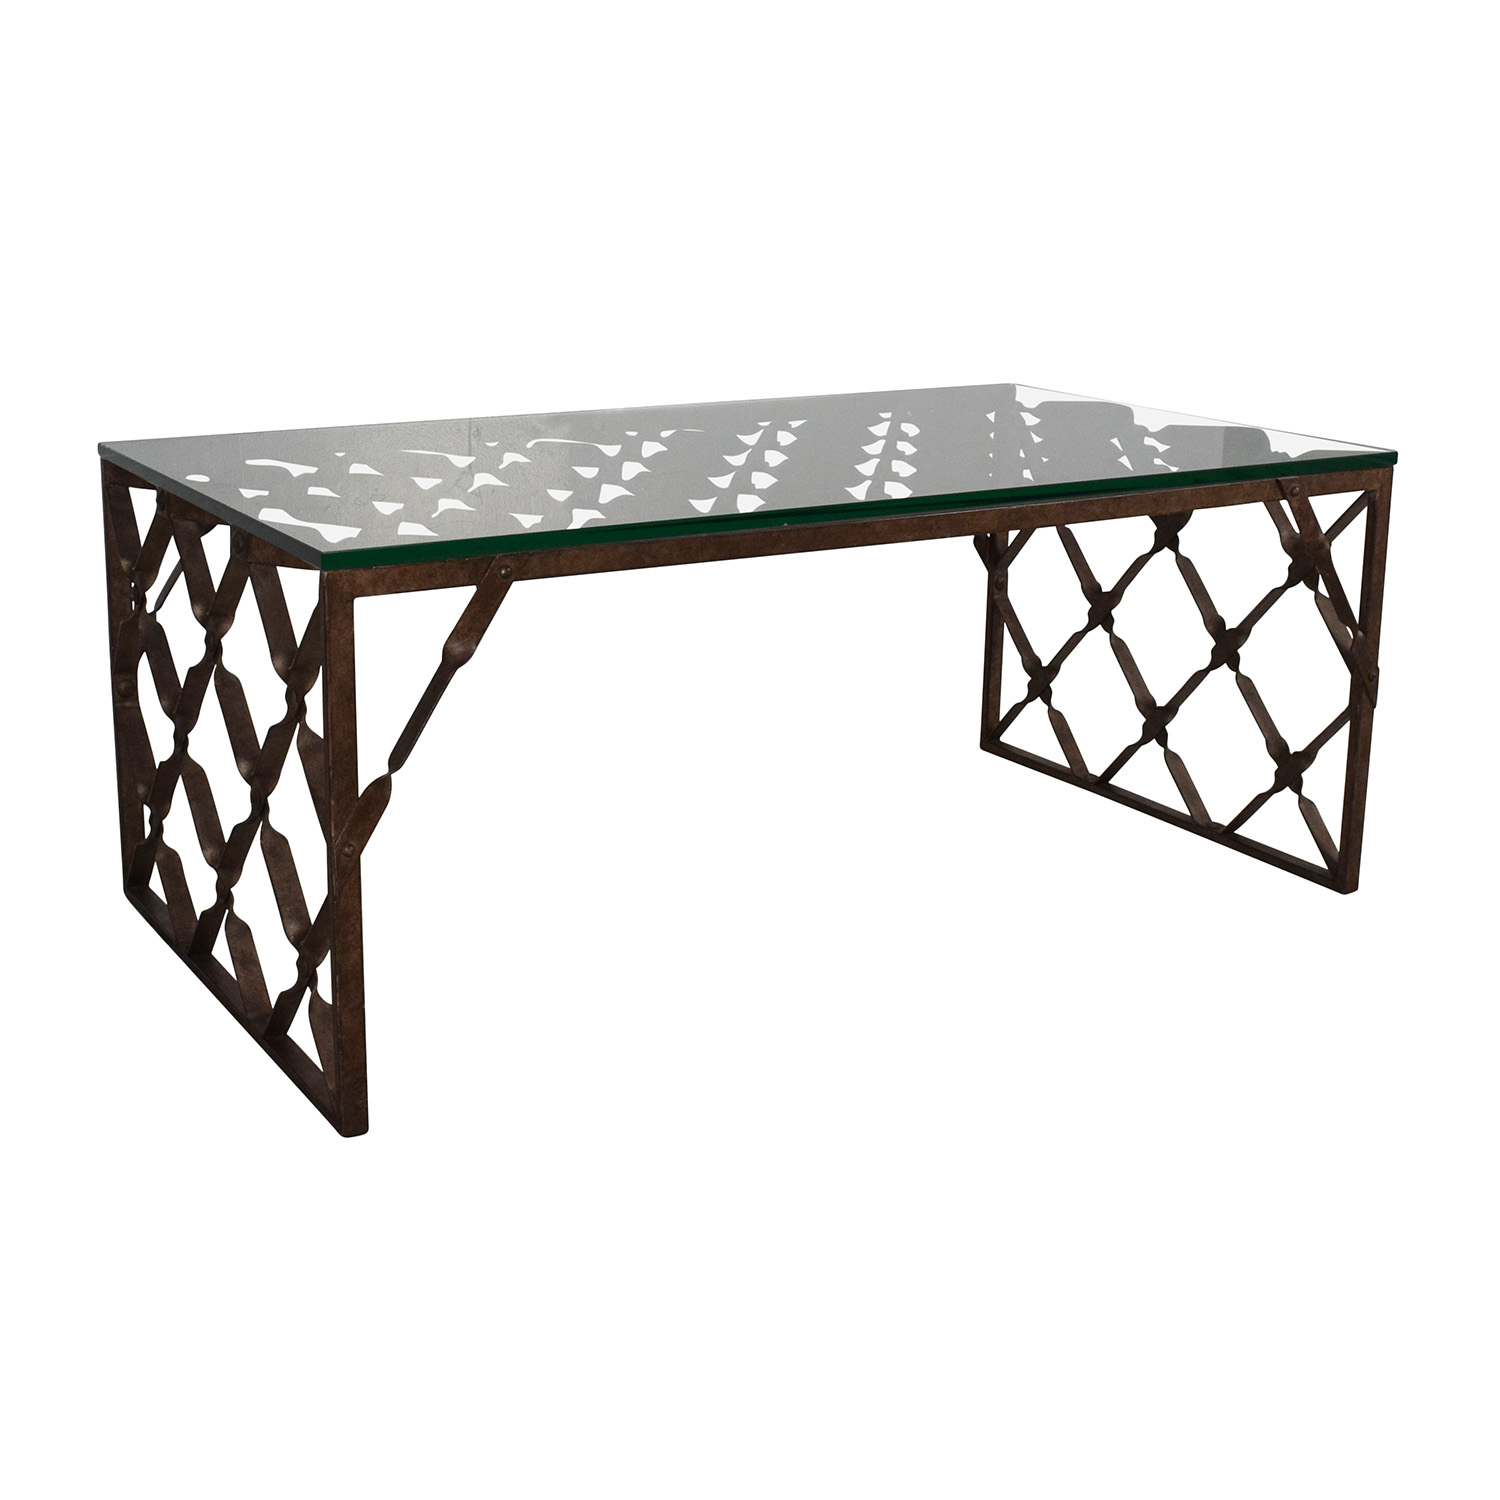 82 off crate and barrel crate barrel glass top metalwork coffee table tables Glass top for coffee table